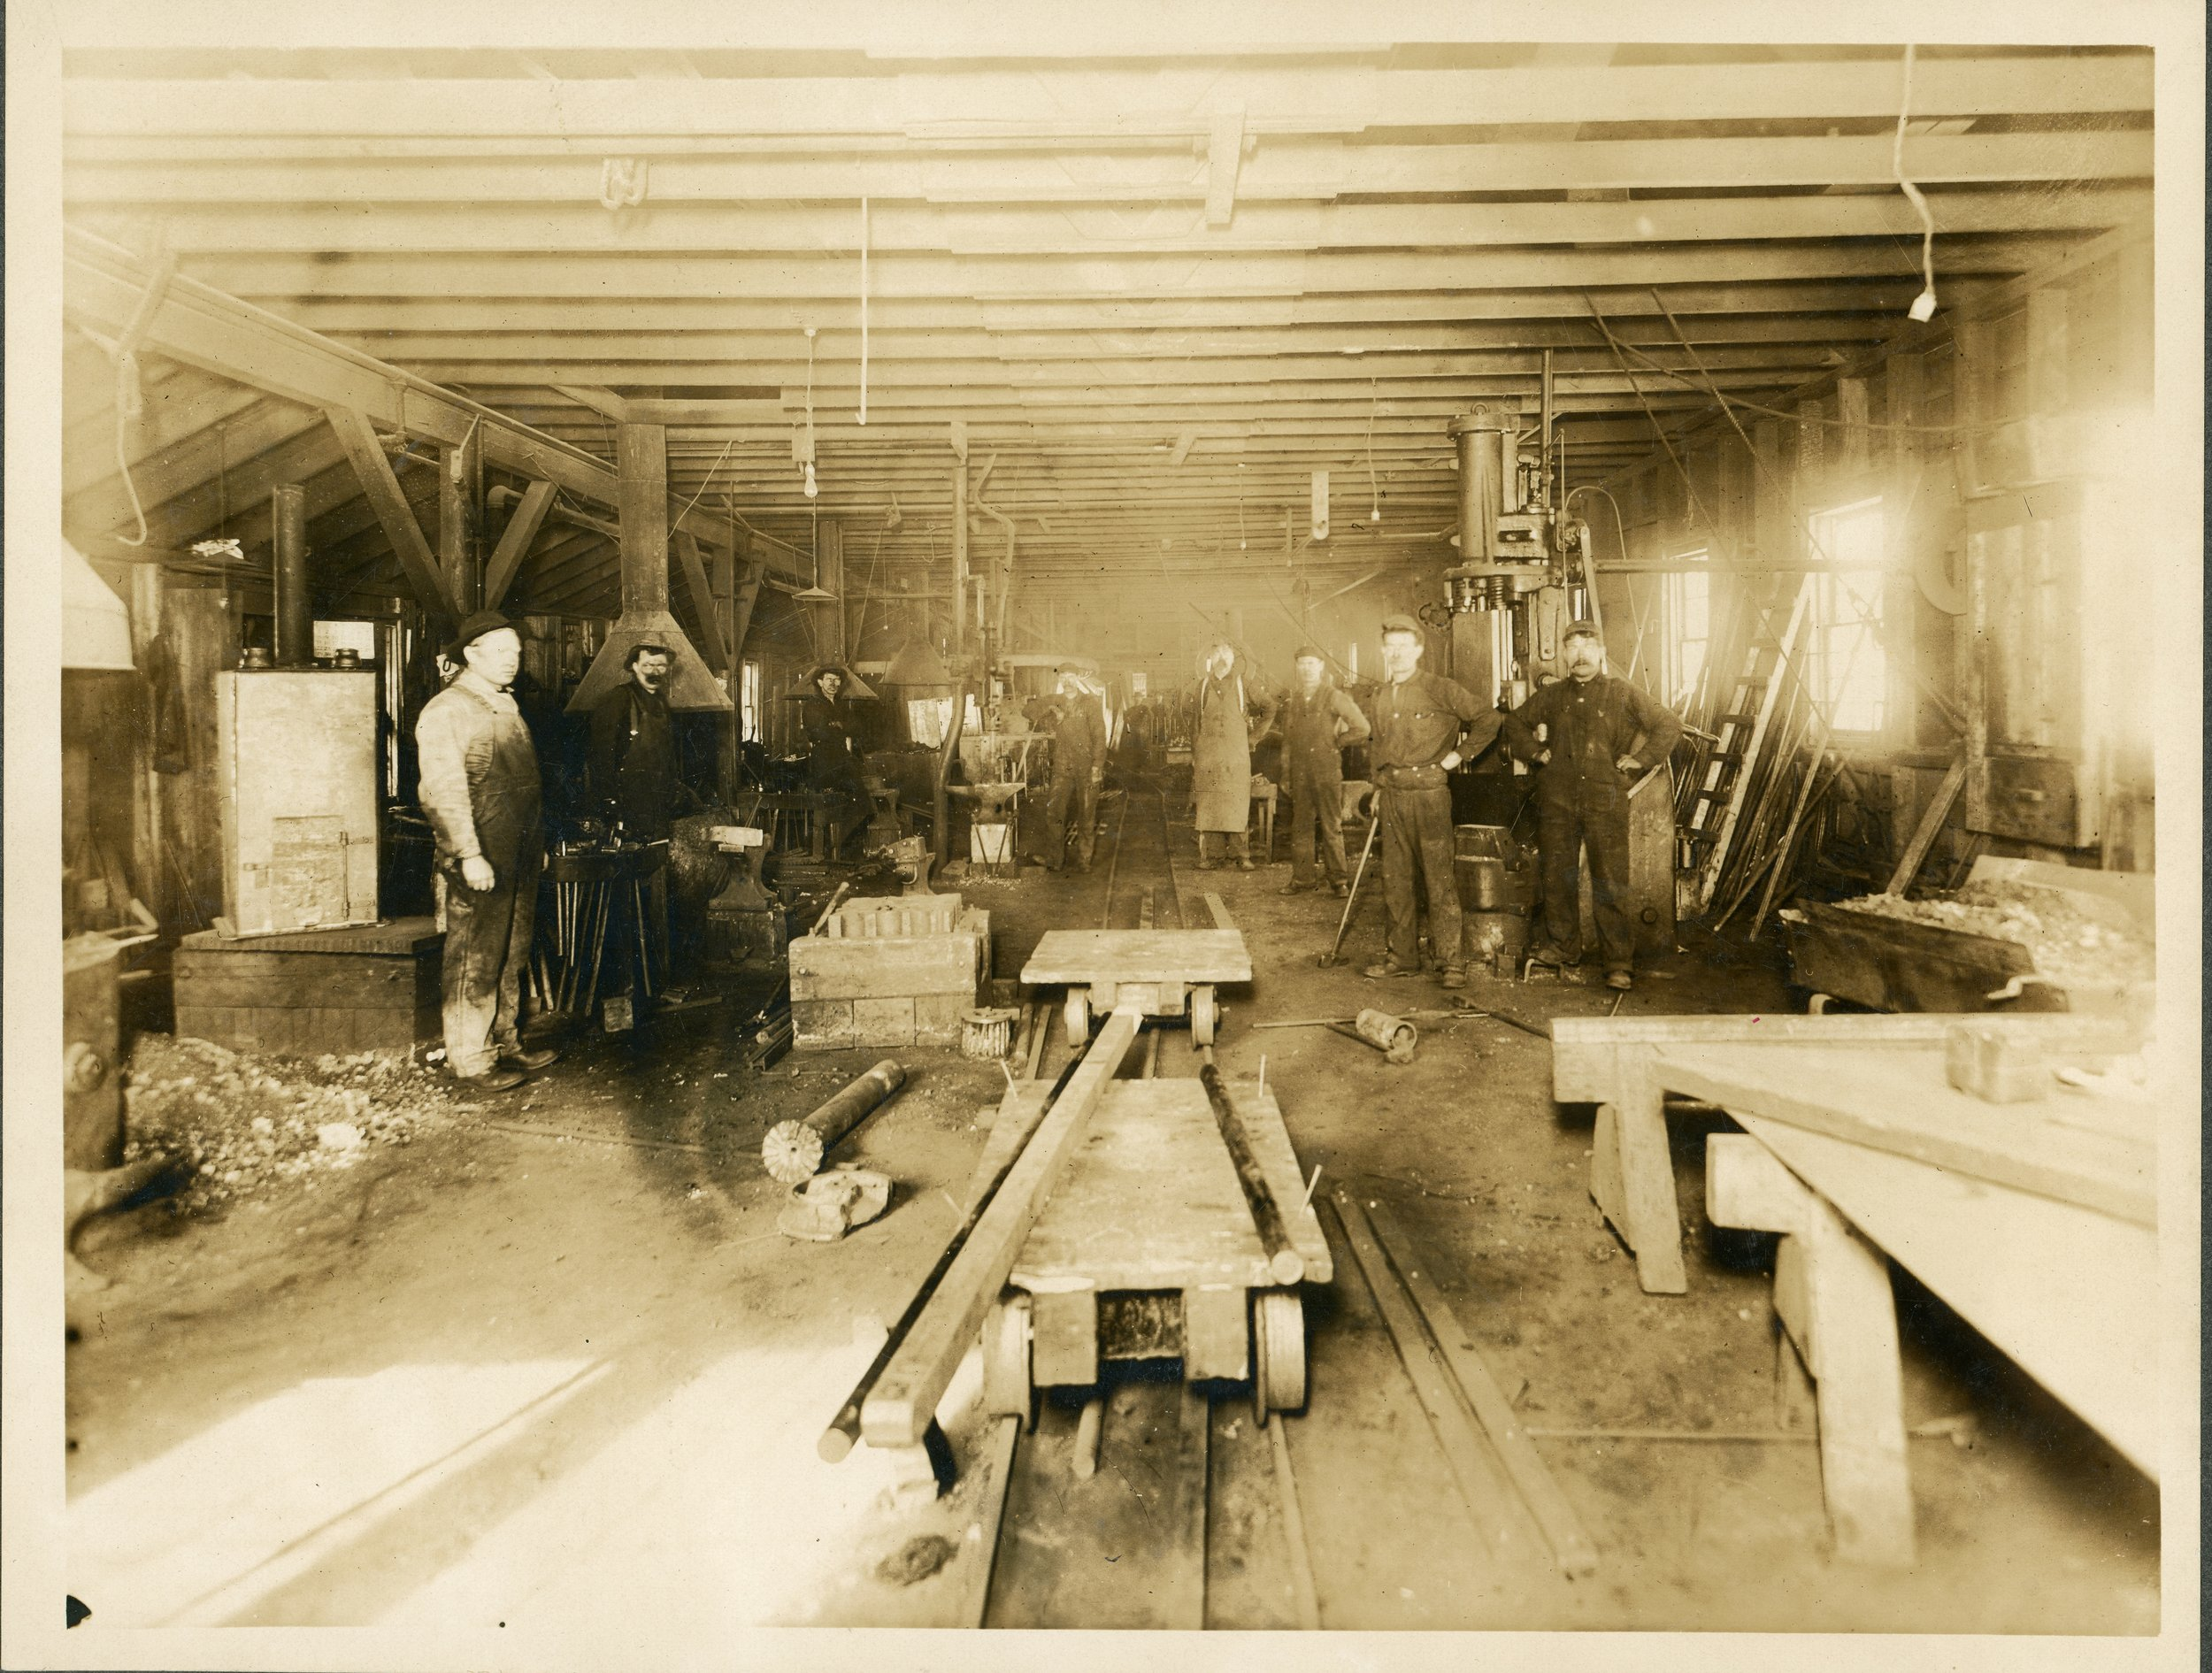 Photo 2304.0084: Blacksmith shop were a flatbed cart can be seen in the centre foreground and was most likely used to carry equipment in and out of the blacksmith shop. Far left: William Scholermer. Date unknown.